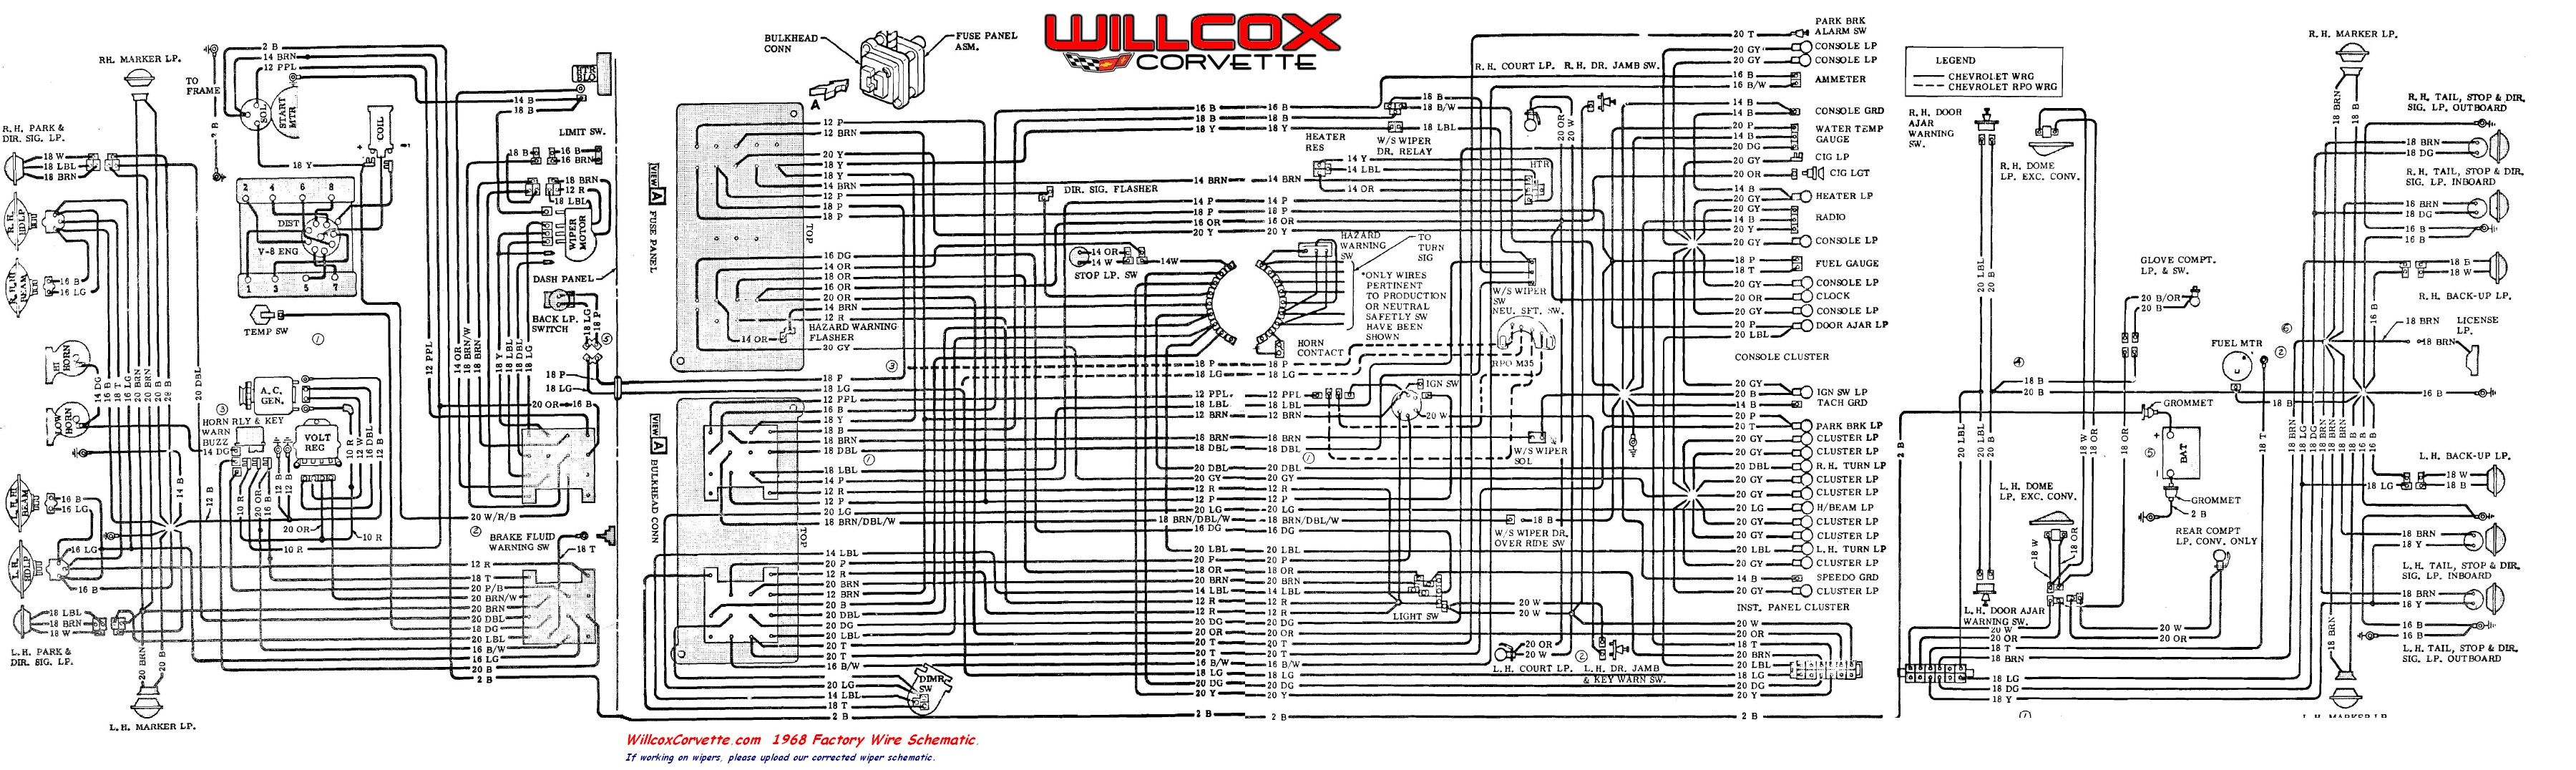 1973 corvette wiring schematic data wiring diagram u2022 rh chamaela co 74 Corvette Wiring Diagram C3 Corvette Wiring Diagram